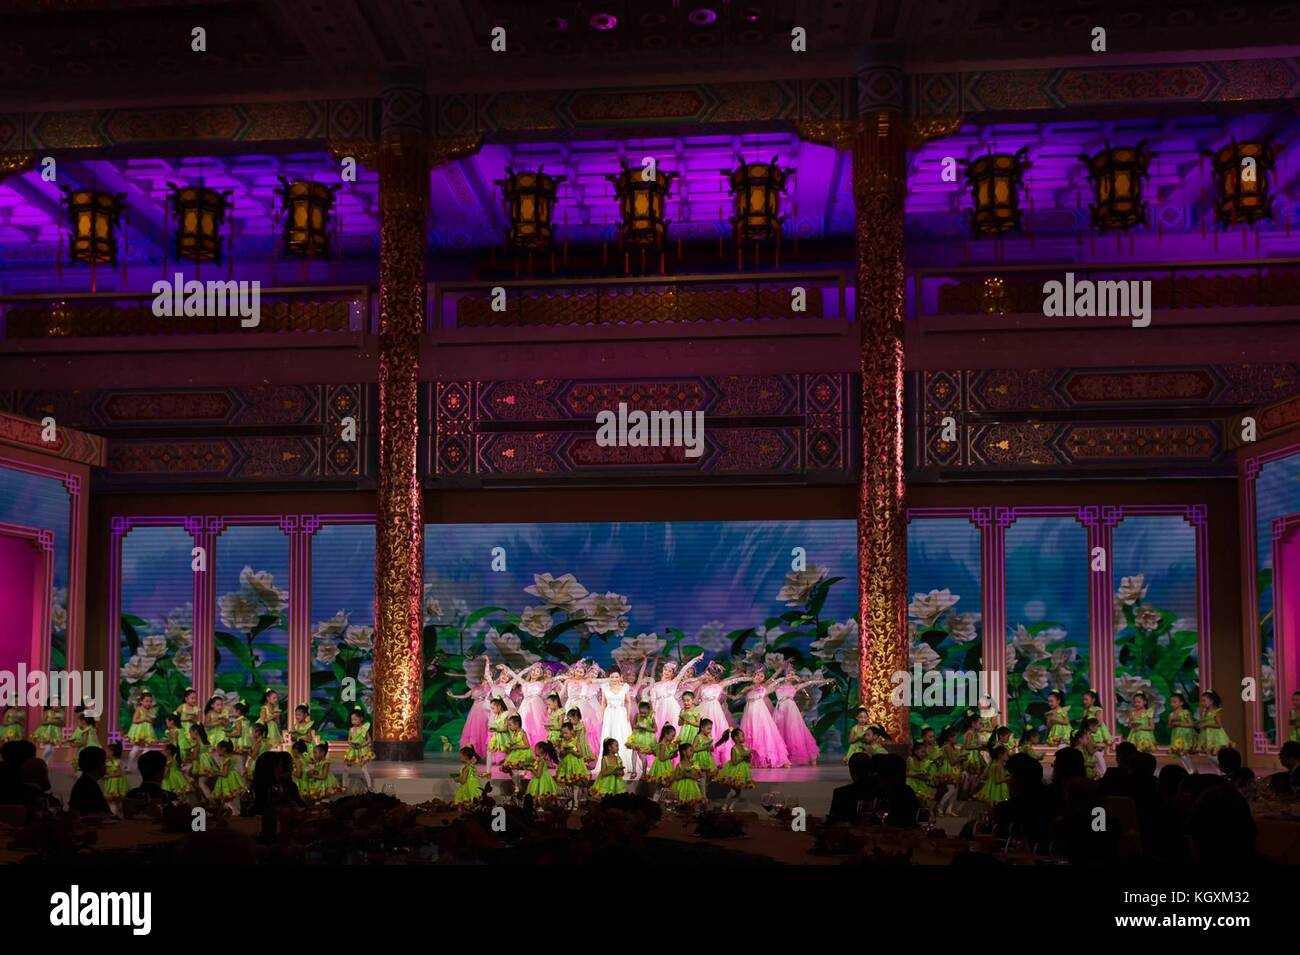 Chinese traditional performers during the entertainment portion of the state dinner for U.S President Donald Trump - Stock Image